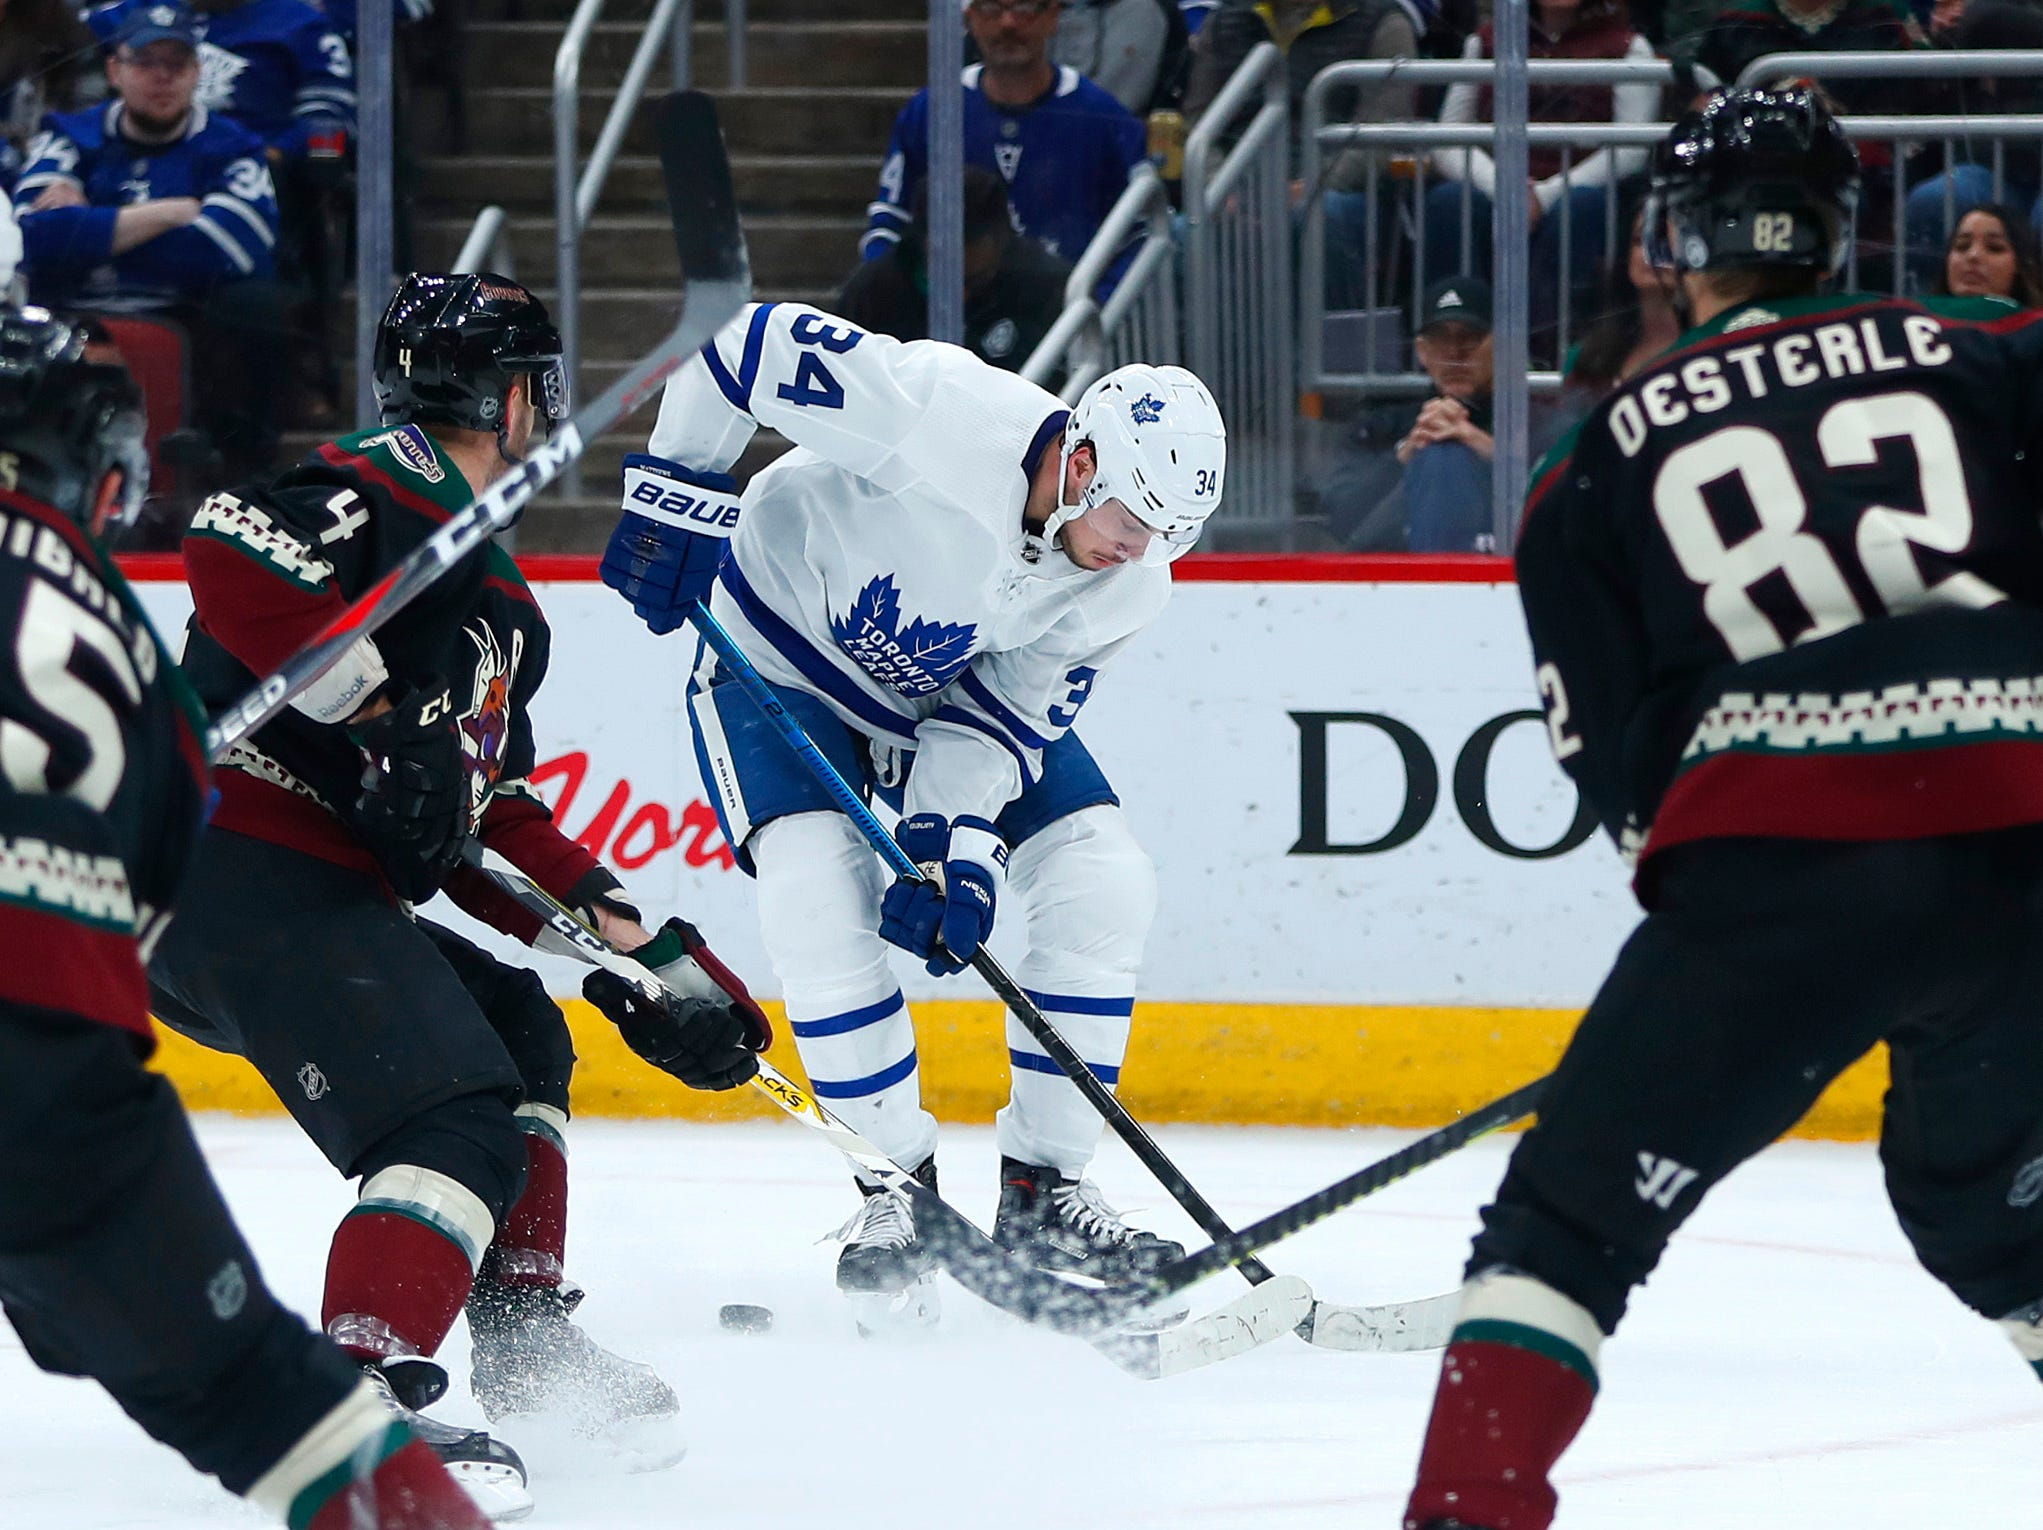 Maple Leafs' Auston Matthews (34) skates up the ice against the Coyotes during the first period at Gila River Arena in Glendale, Ariz. on February 16, 2019.